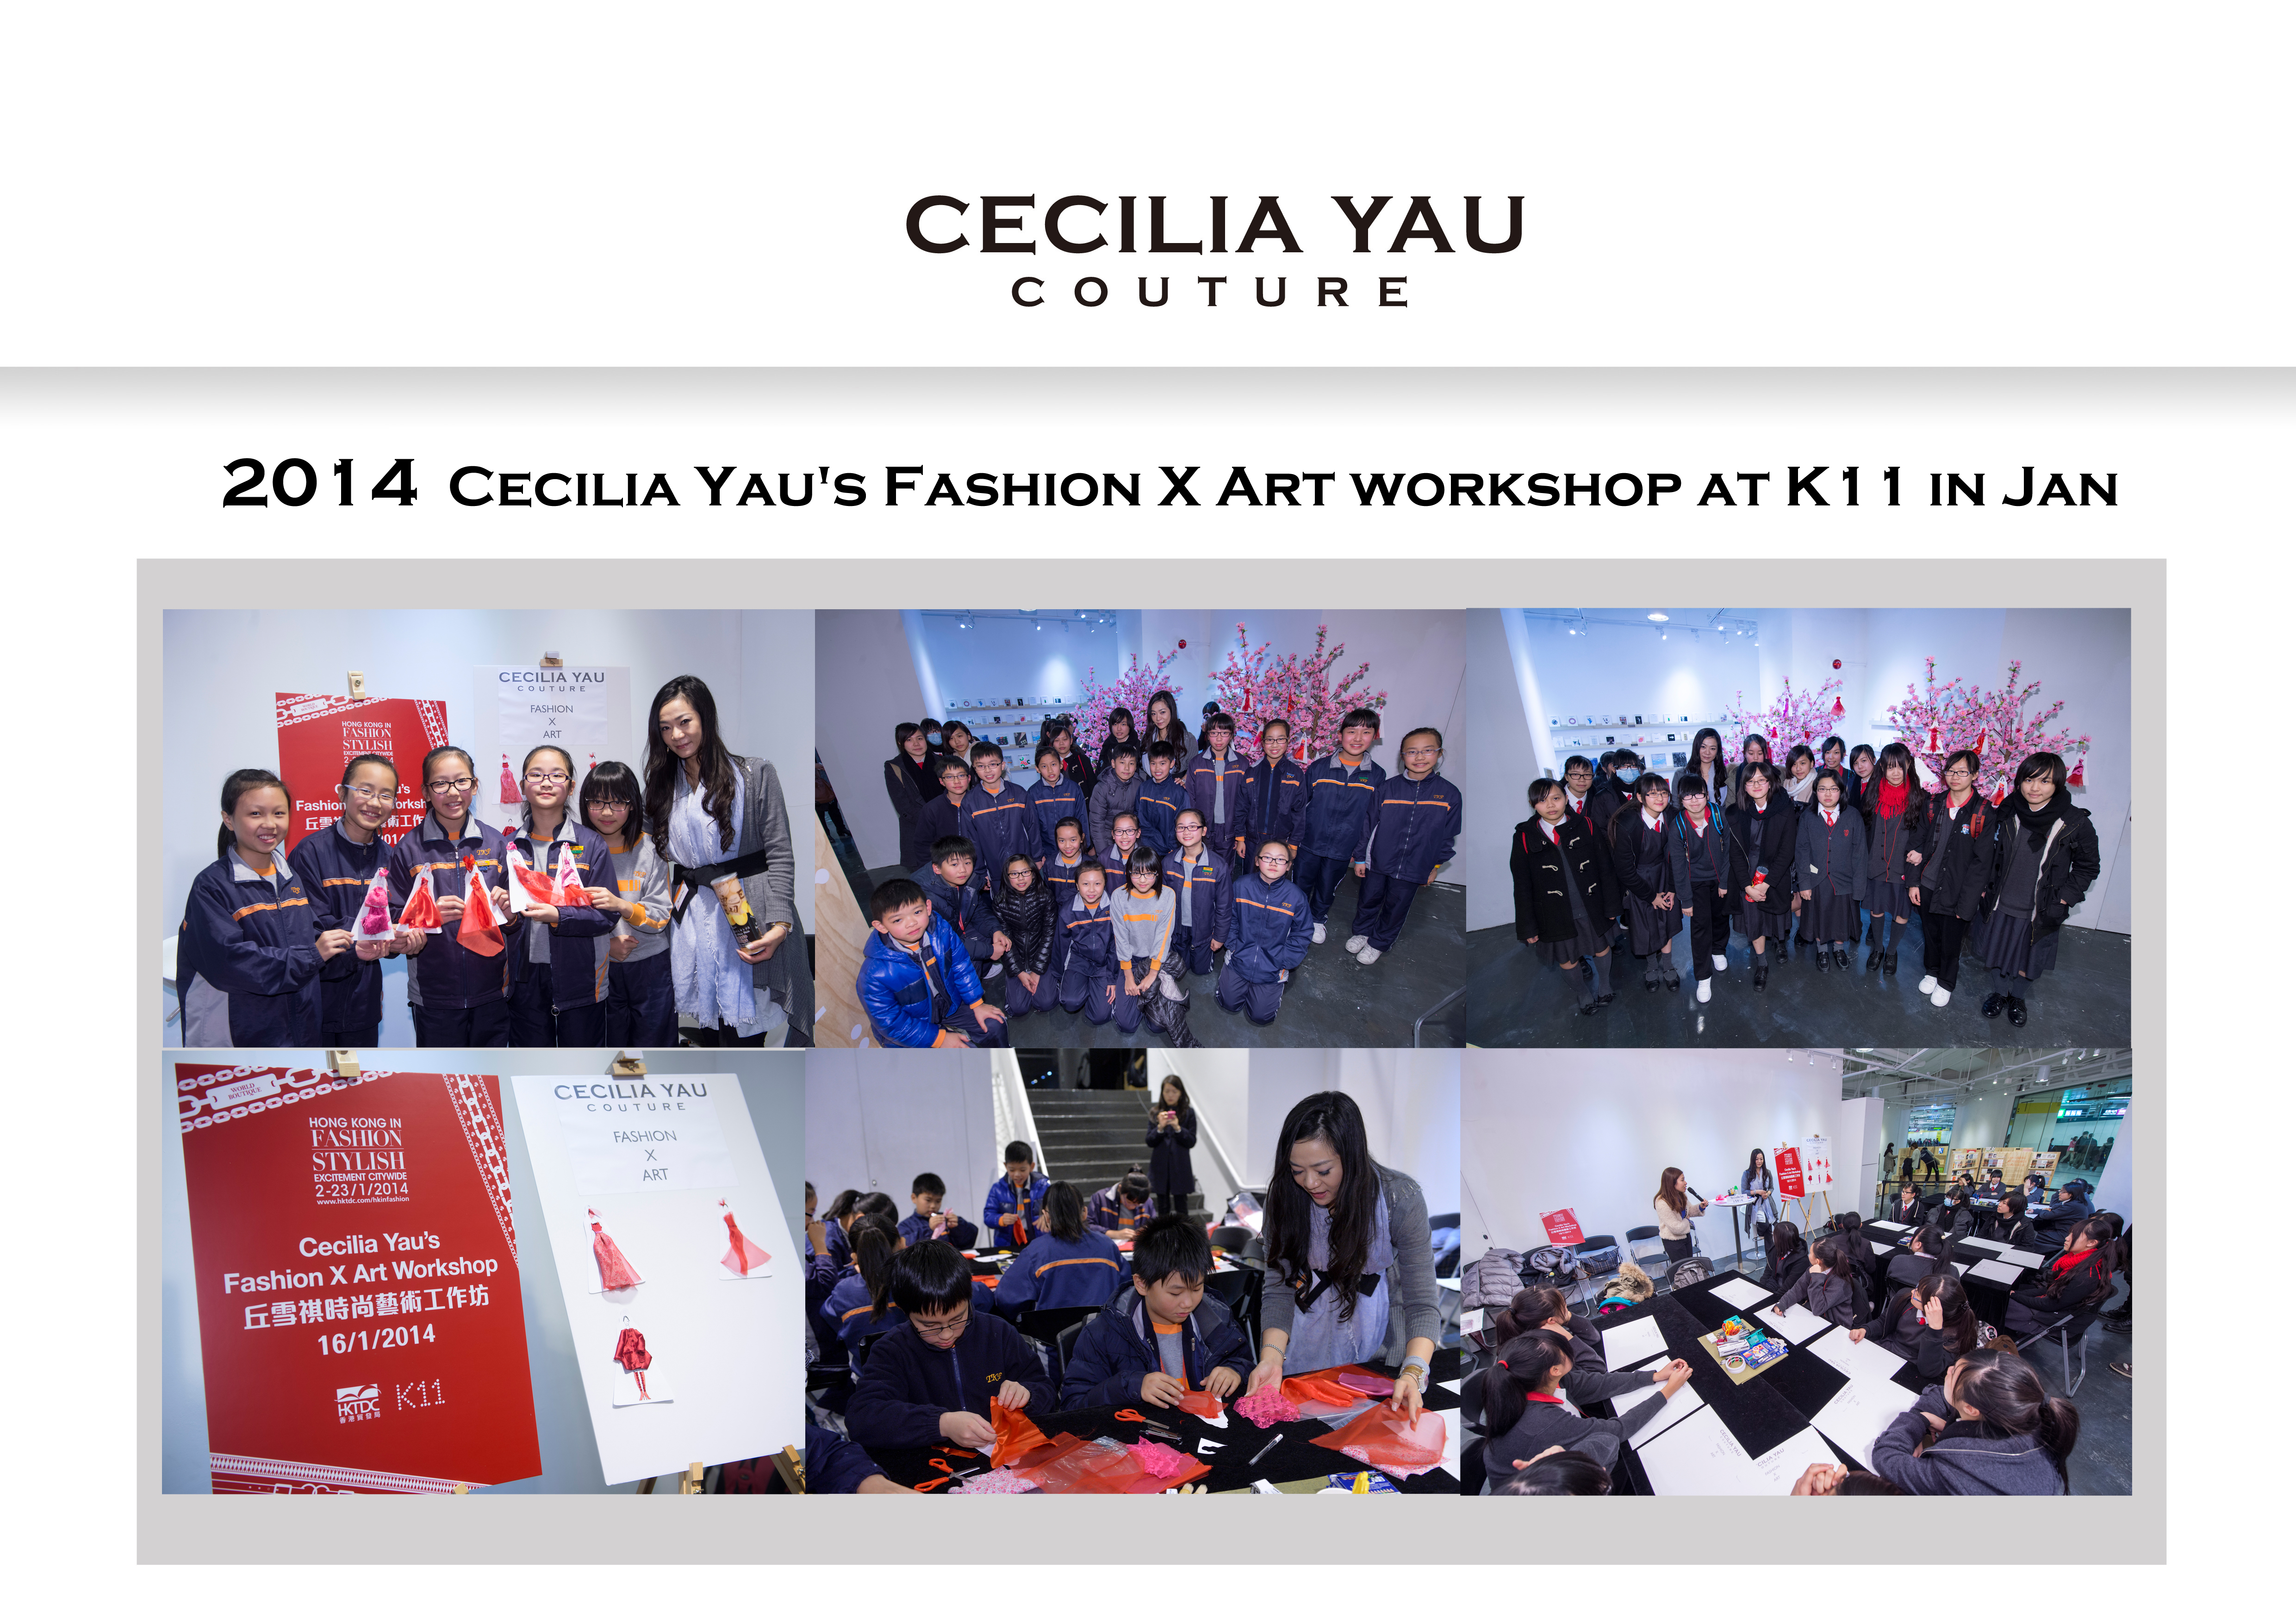 Cecilia Yau grooms fashion talents